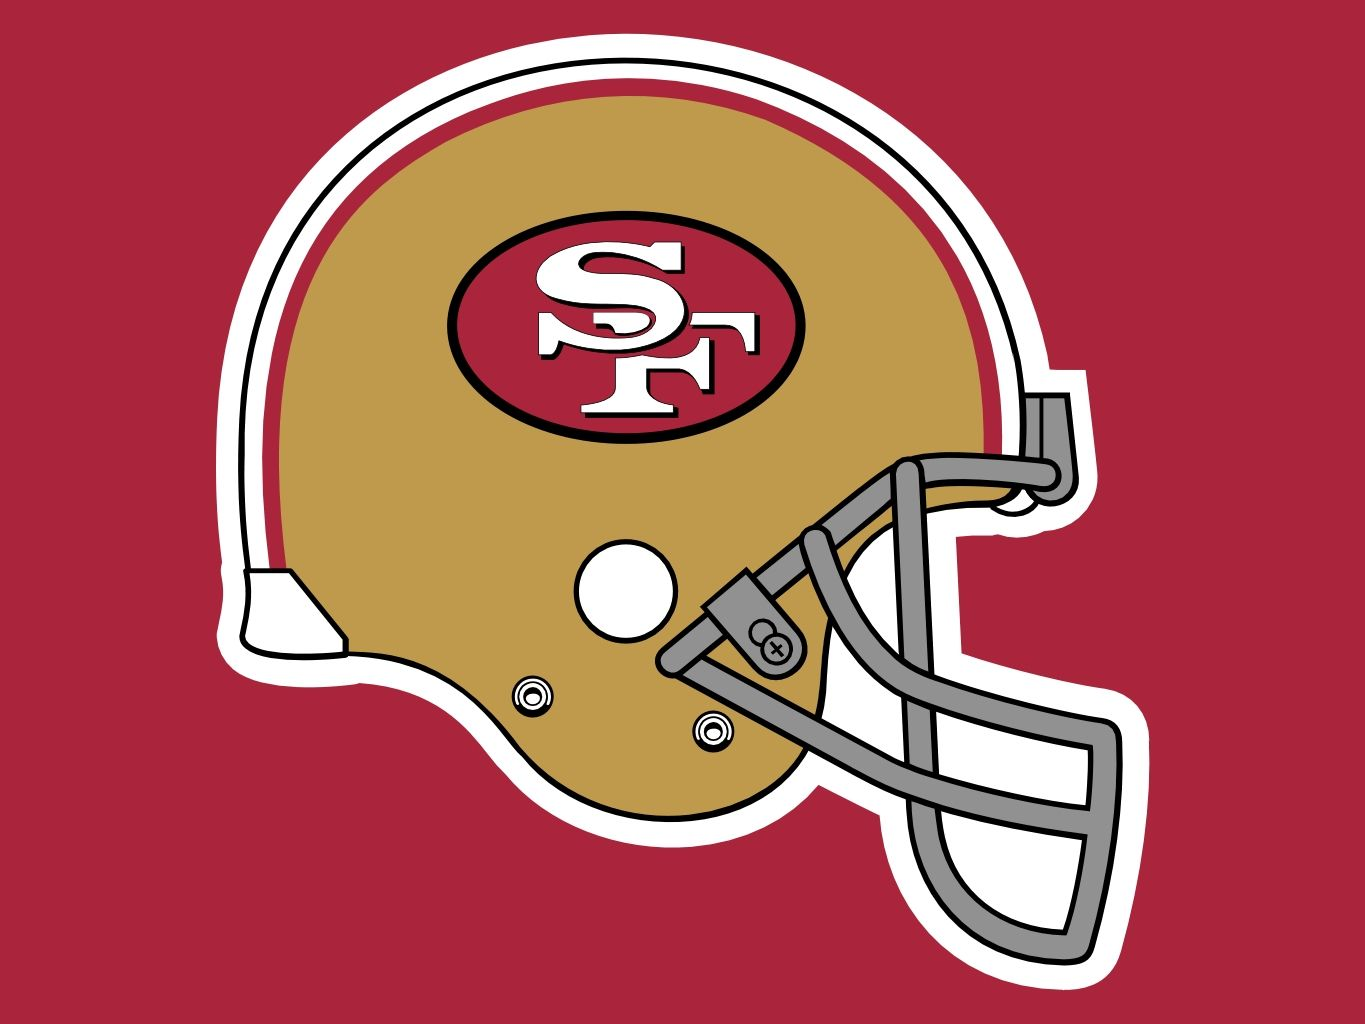 49ers helmet clipart clip black and white download Pin by Roxanne Panighetti on FOOTBALL   Football helmets, Nfl logo ... clip black and white download